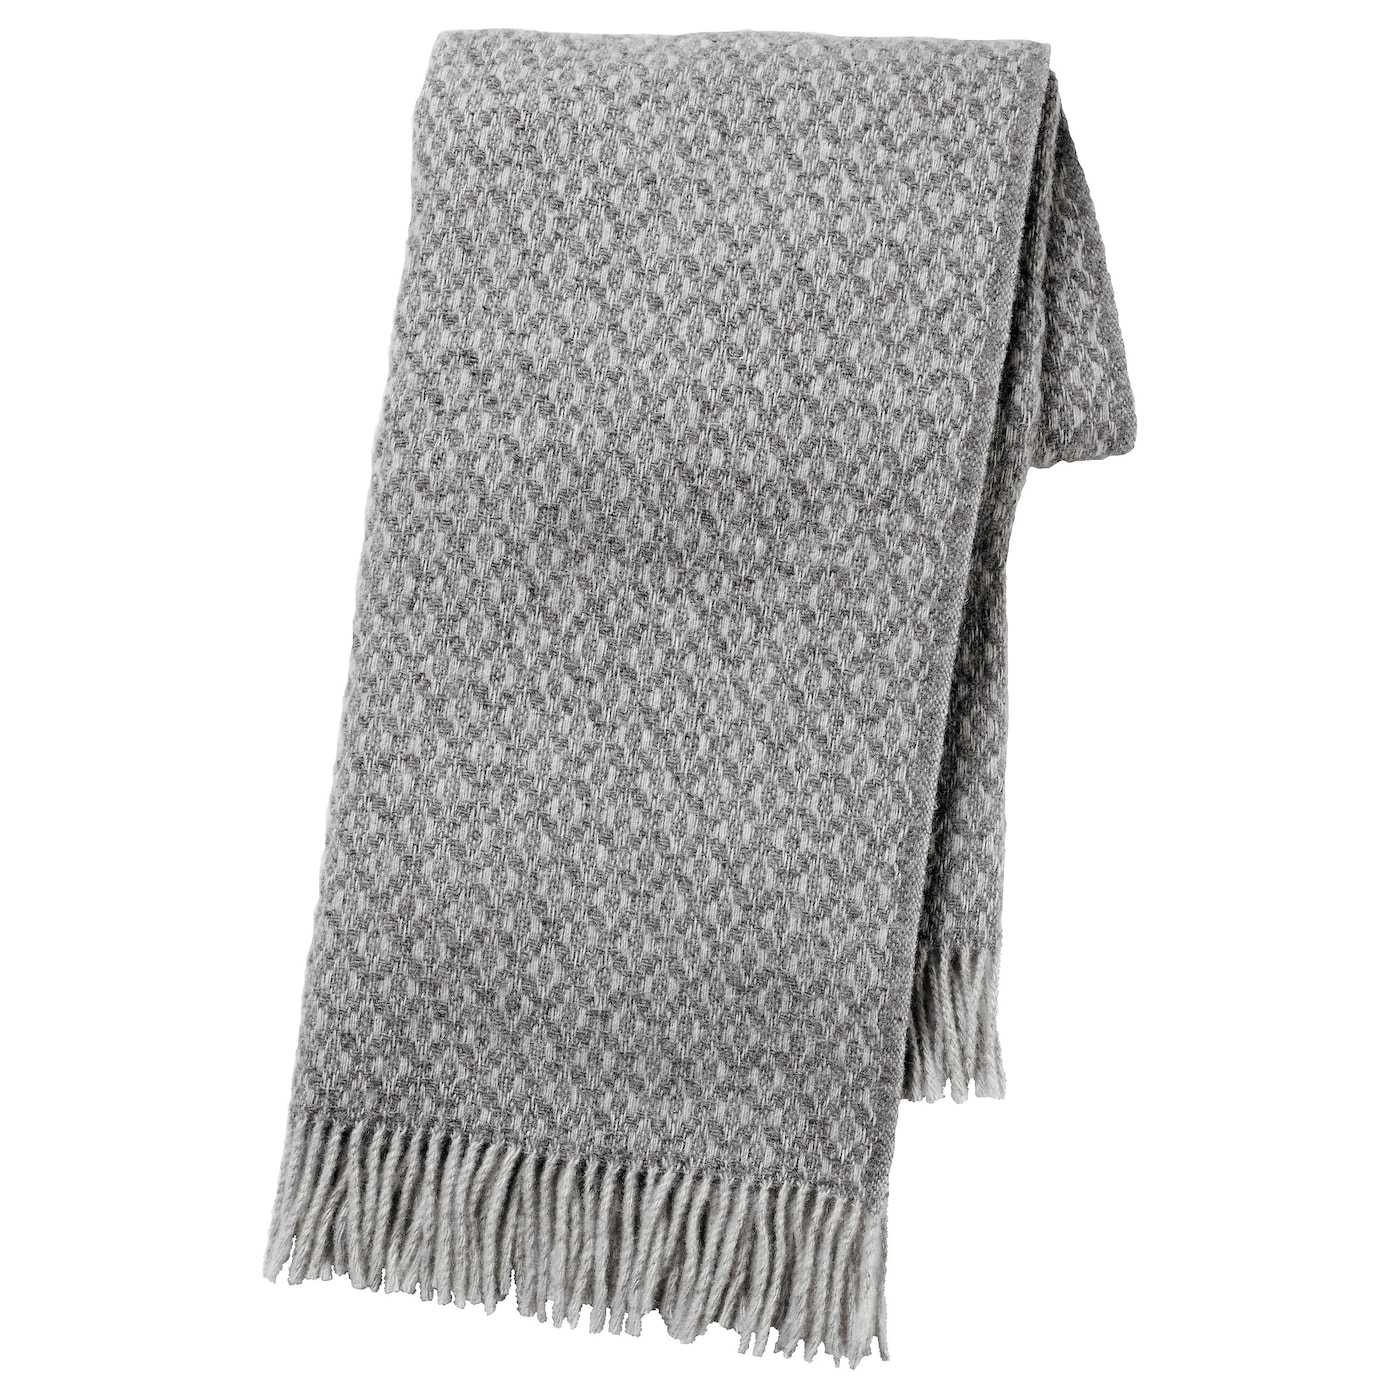 IKEA GRÅFIBBLA throw